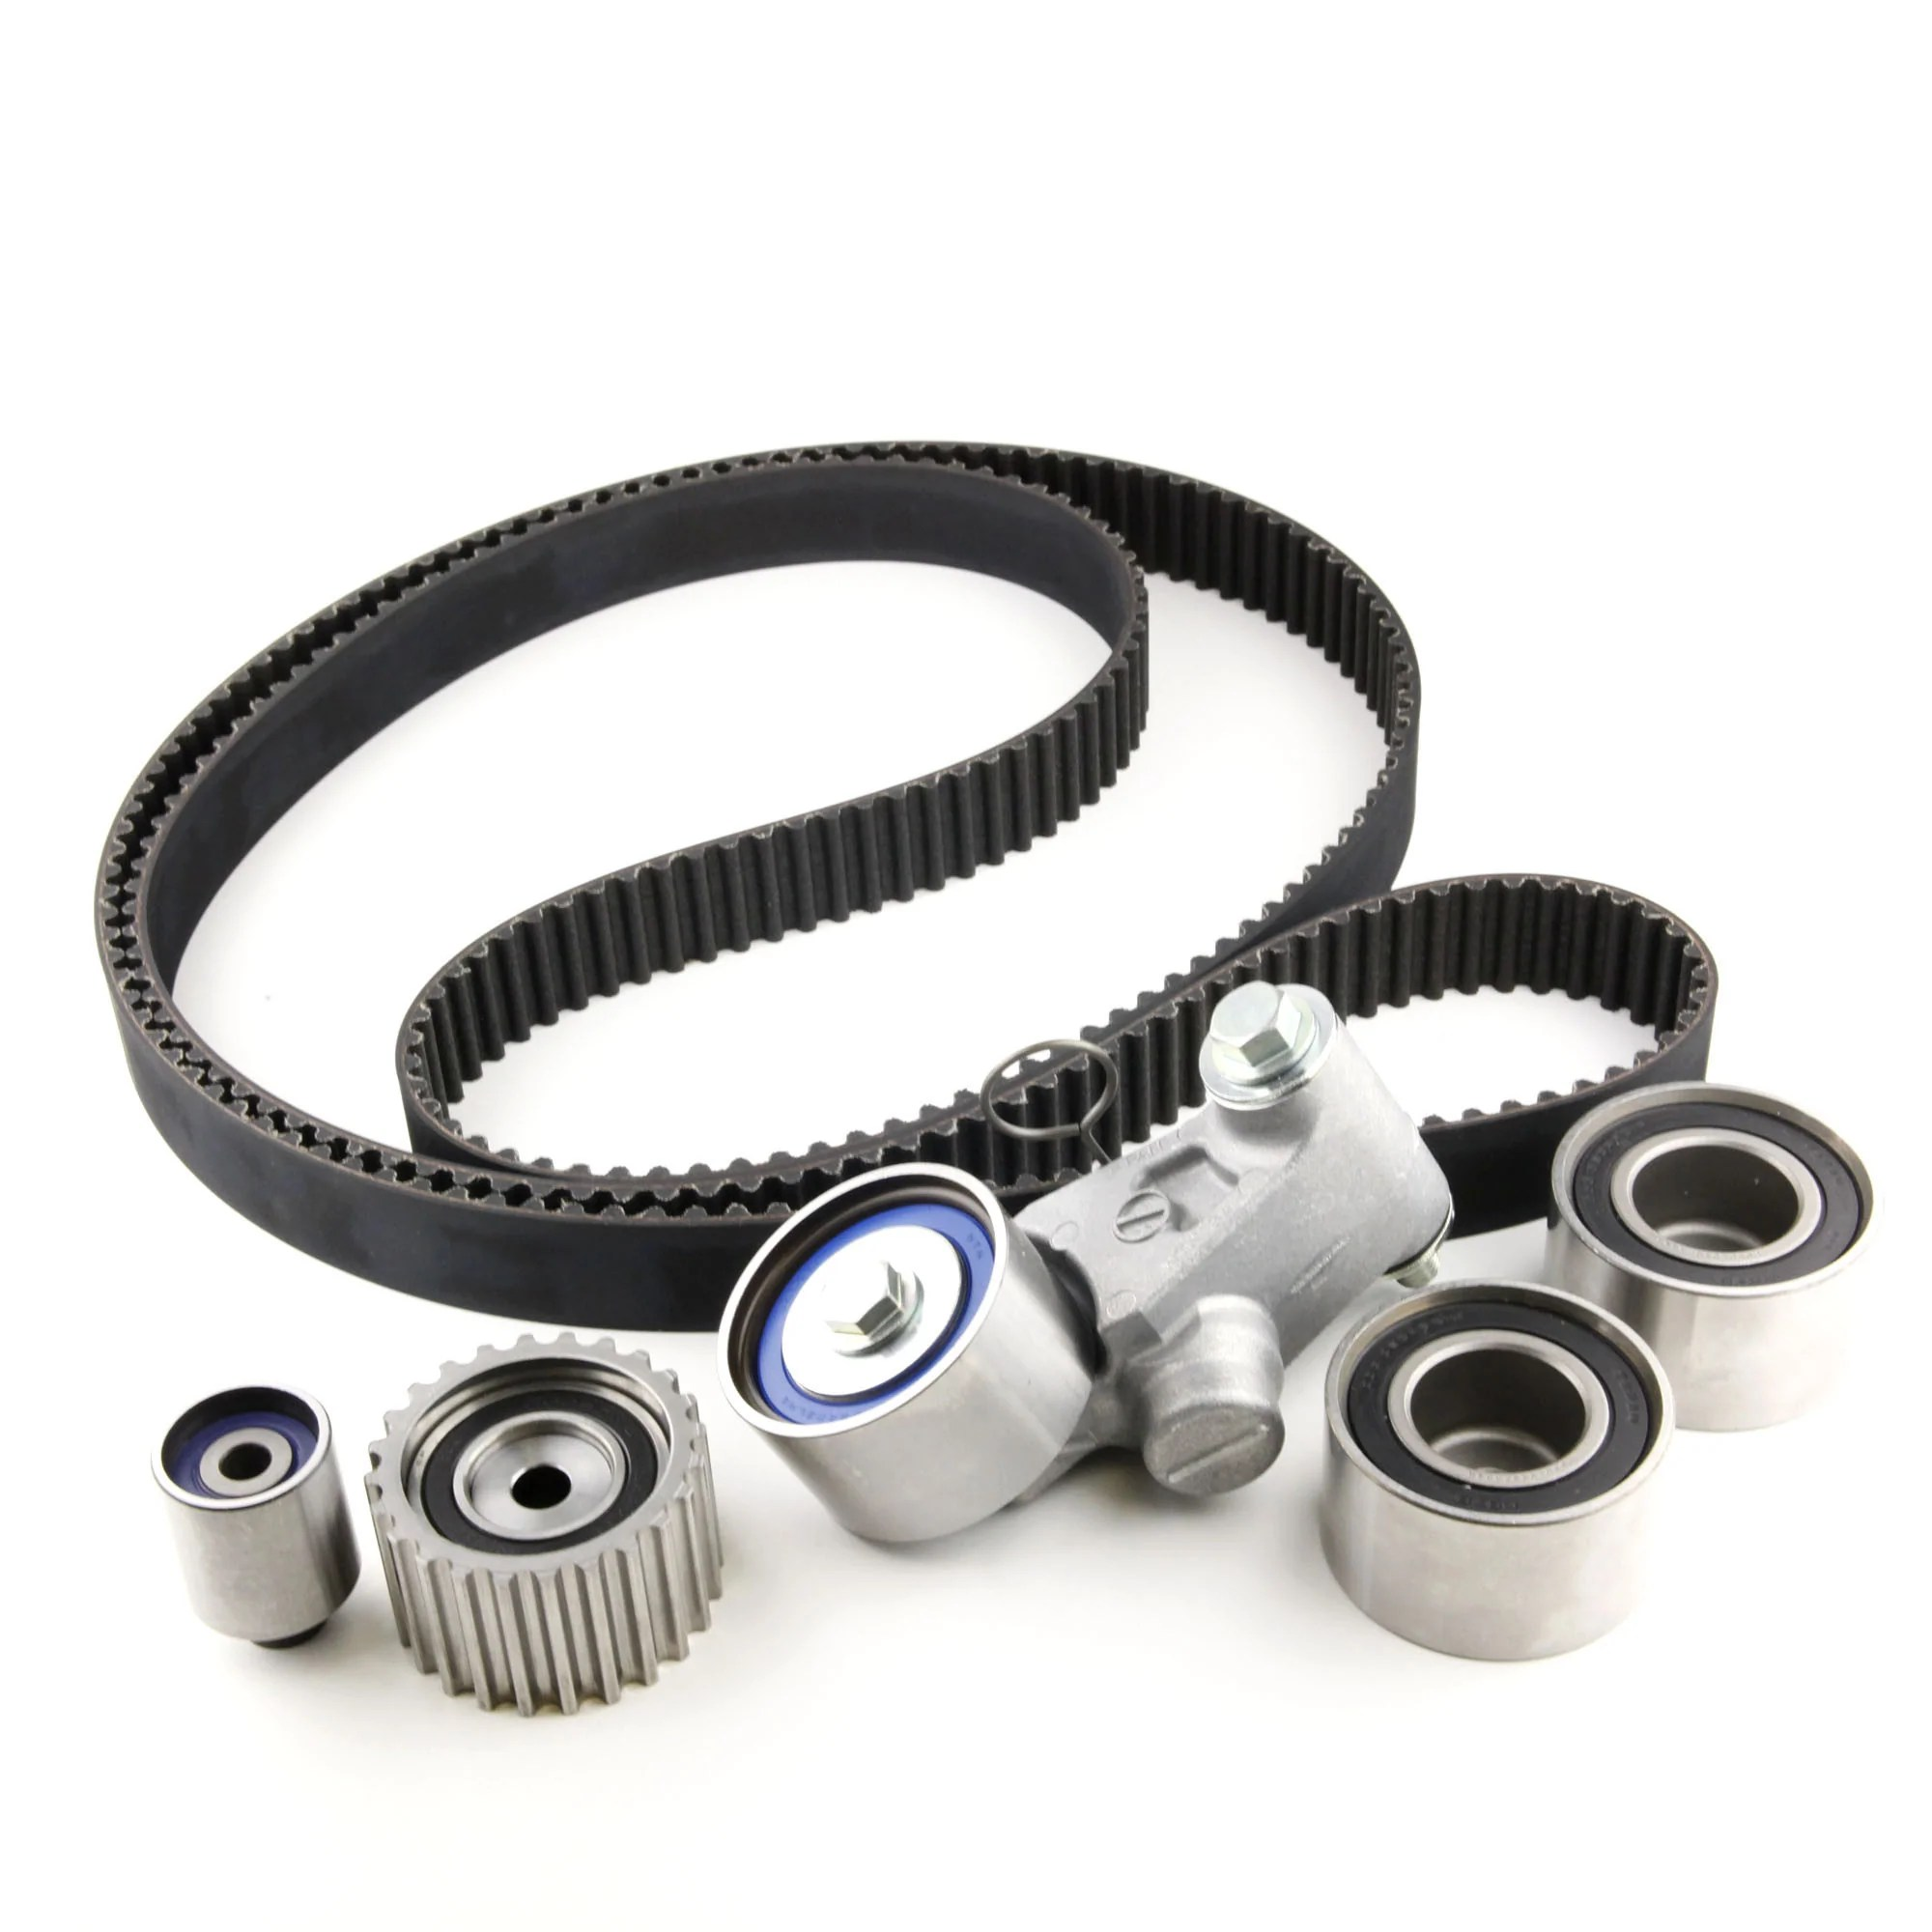 gates timing belt kit without water pump 2002 2014 wrx sti 2003 2013 forester 2005 2009 legacy gt outback xt [ 2000 x 2000 Pixel ]